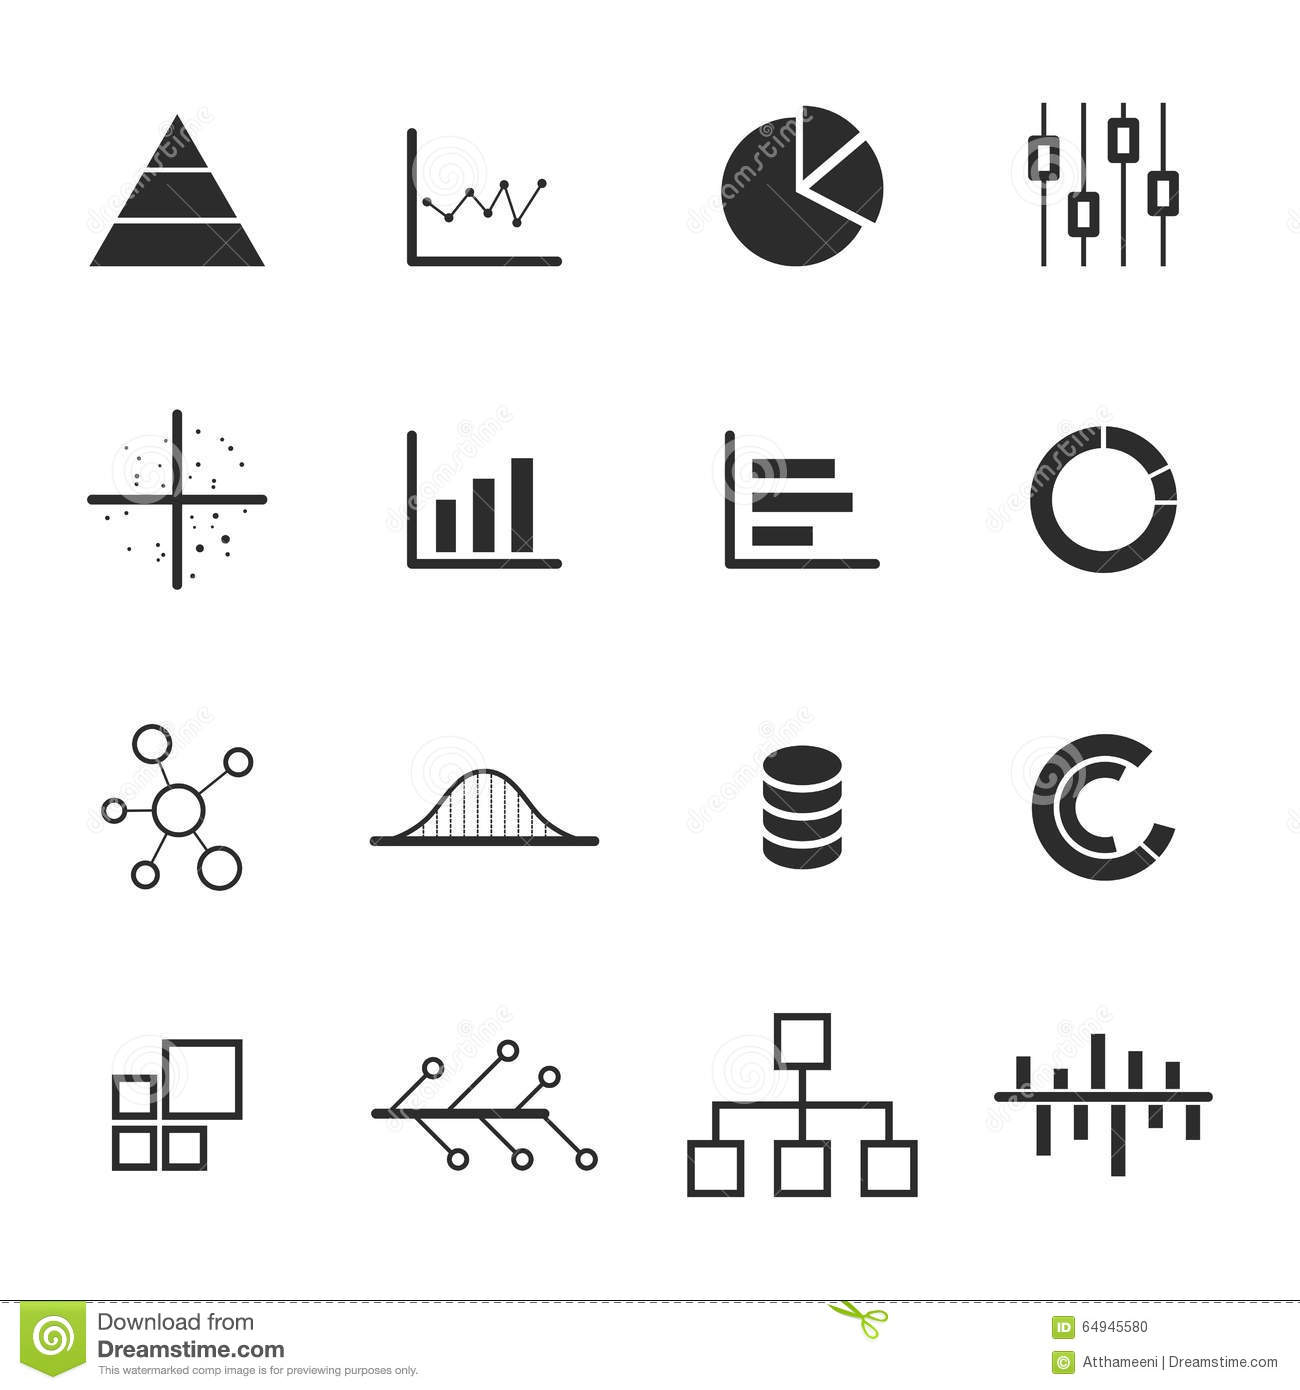 hight resolution of data chart diagram icon set